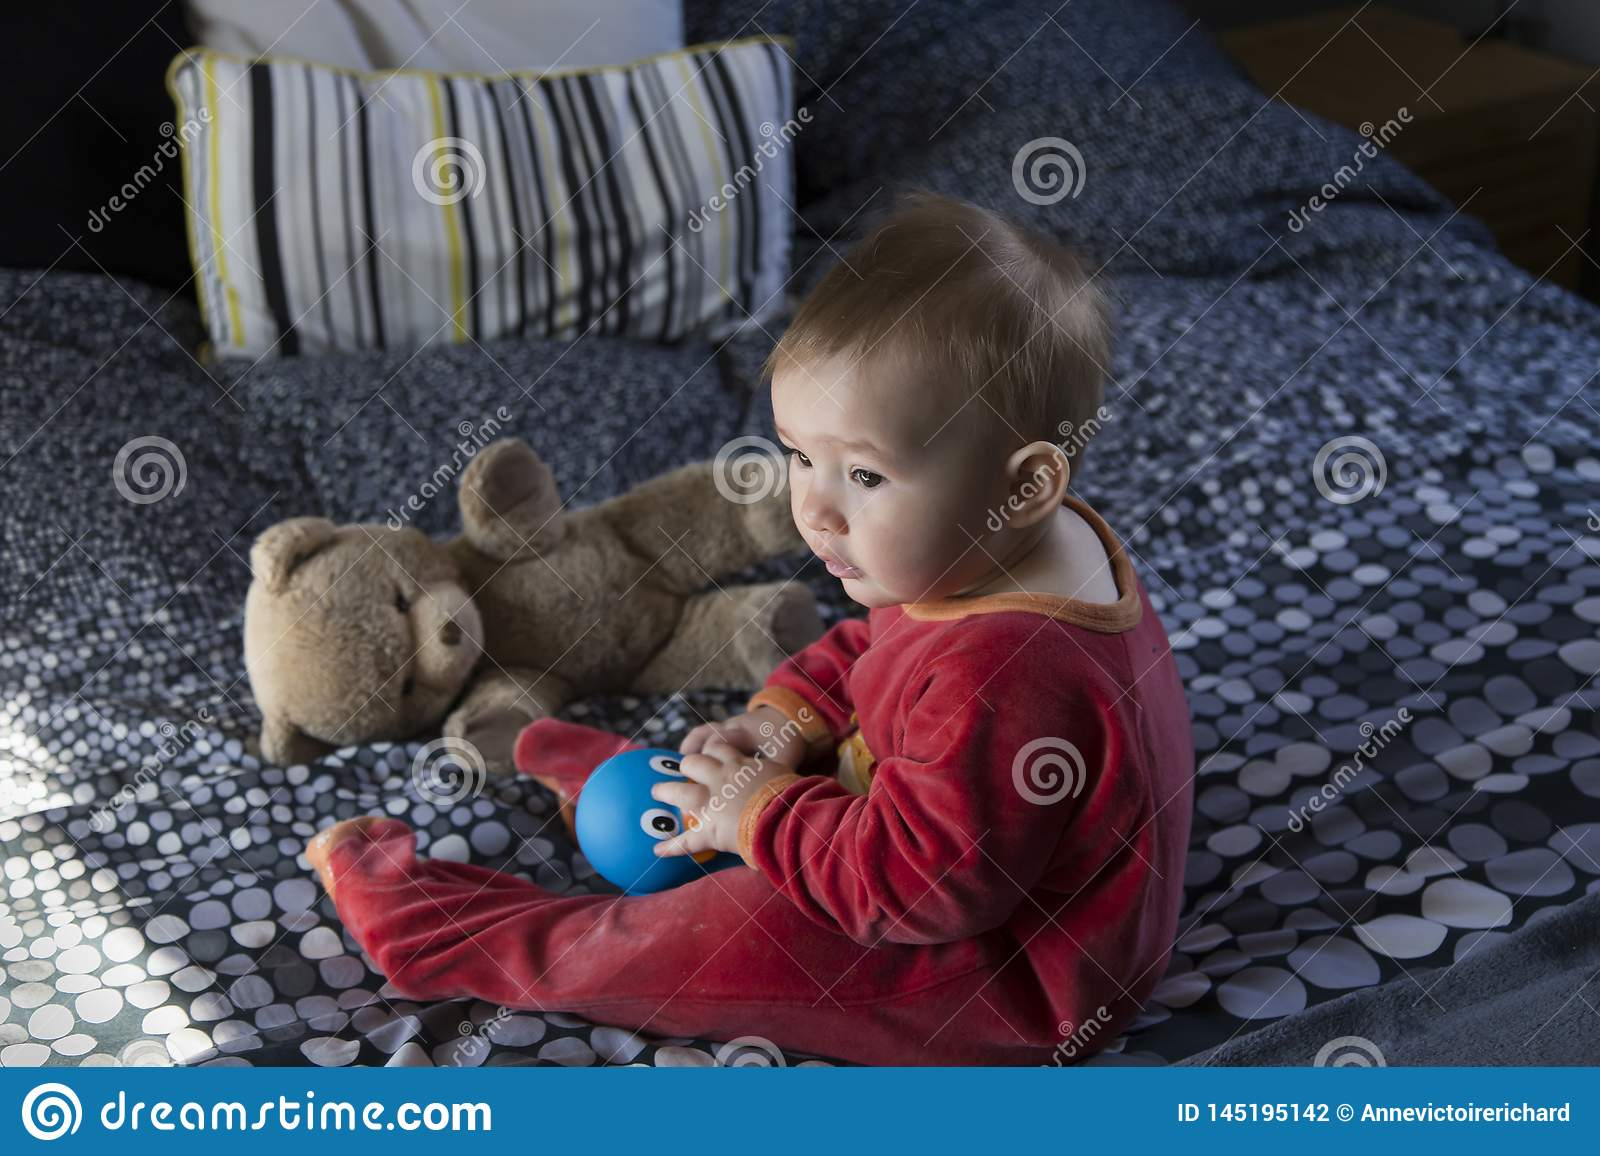 Cute fair baby girl sitting on bed playing with large blue rubber duck and vintage teddy bear